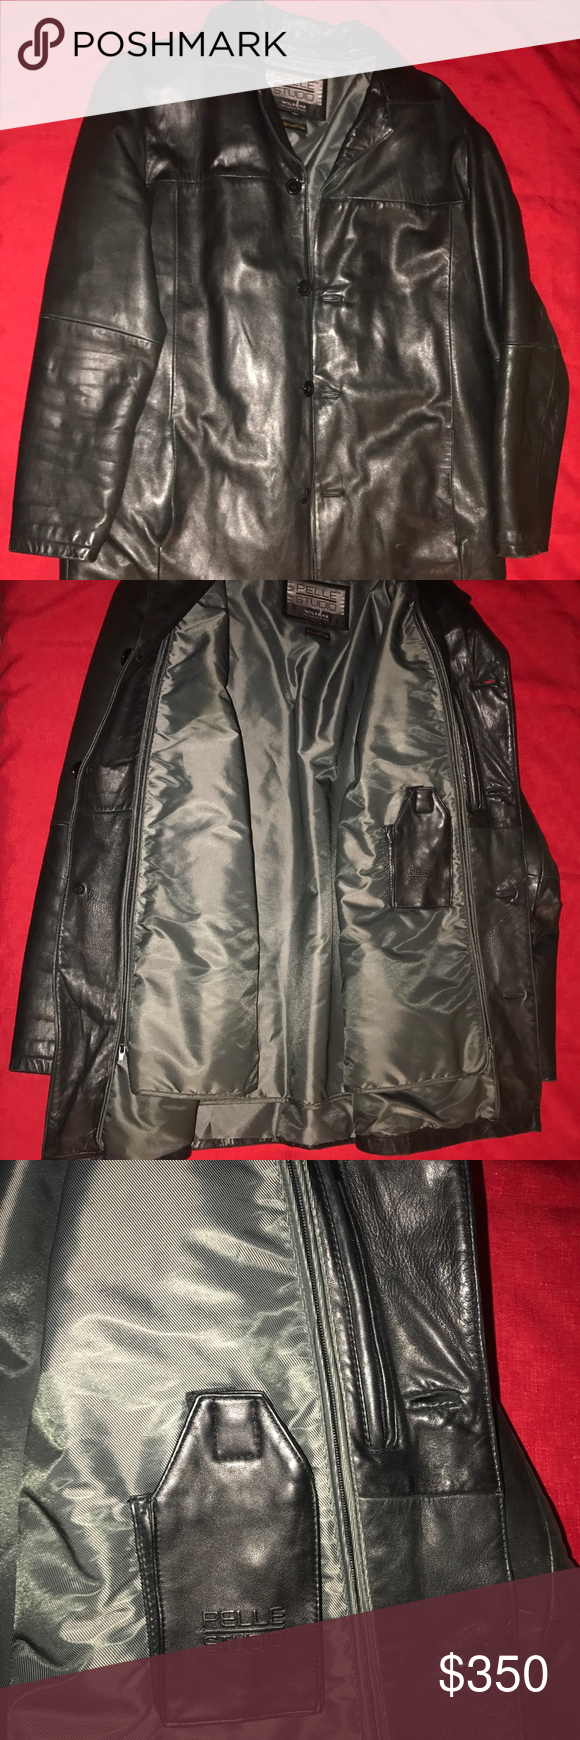 Pelle Studio Wilsons Thinsulate Leather Jacket Leather